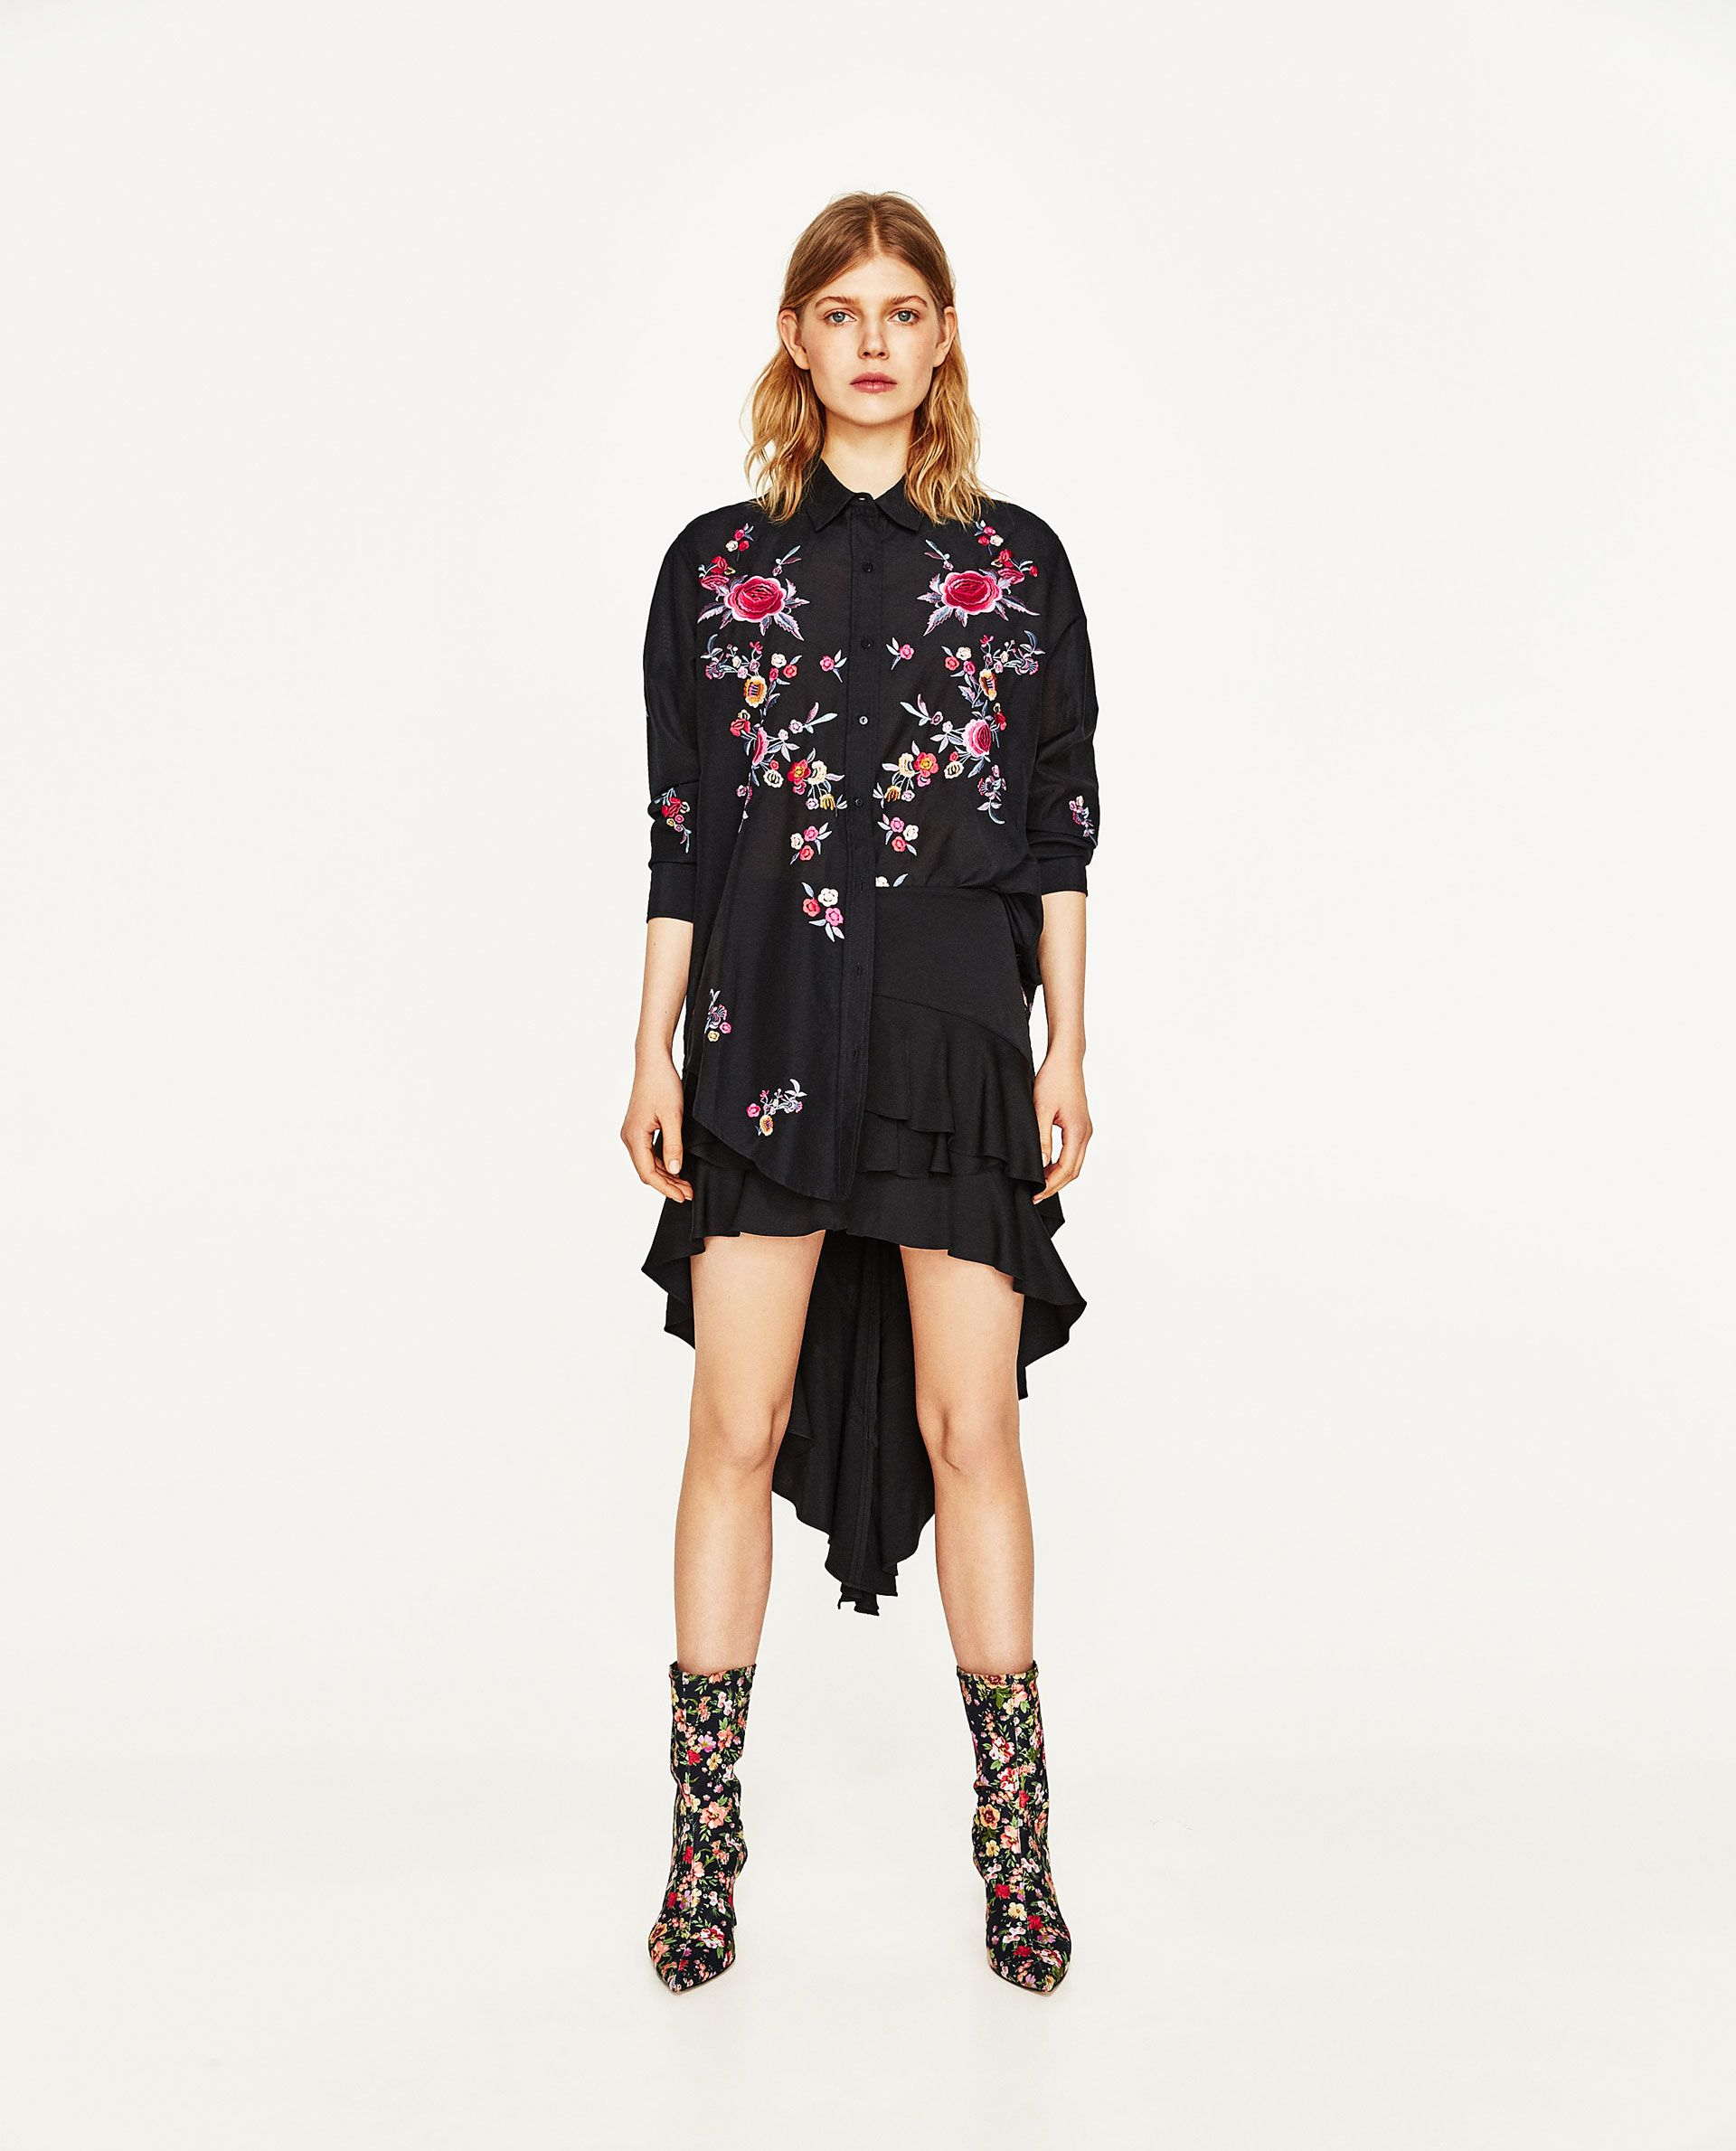 af5cced687afbb ... Women's Clothing, Tops & Blouses. ZARA - WOMAN - FLORAL EMBROIDERY SHIRT